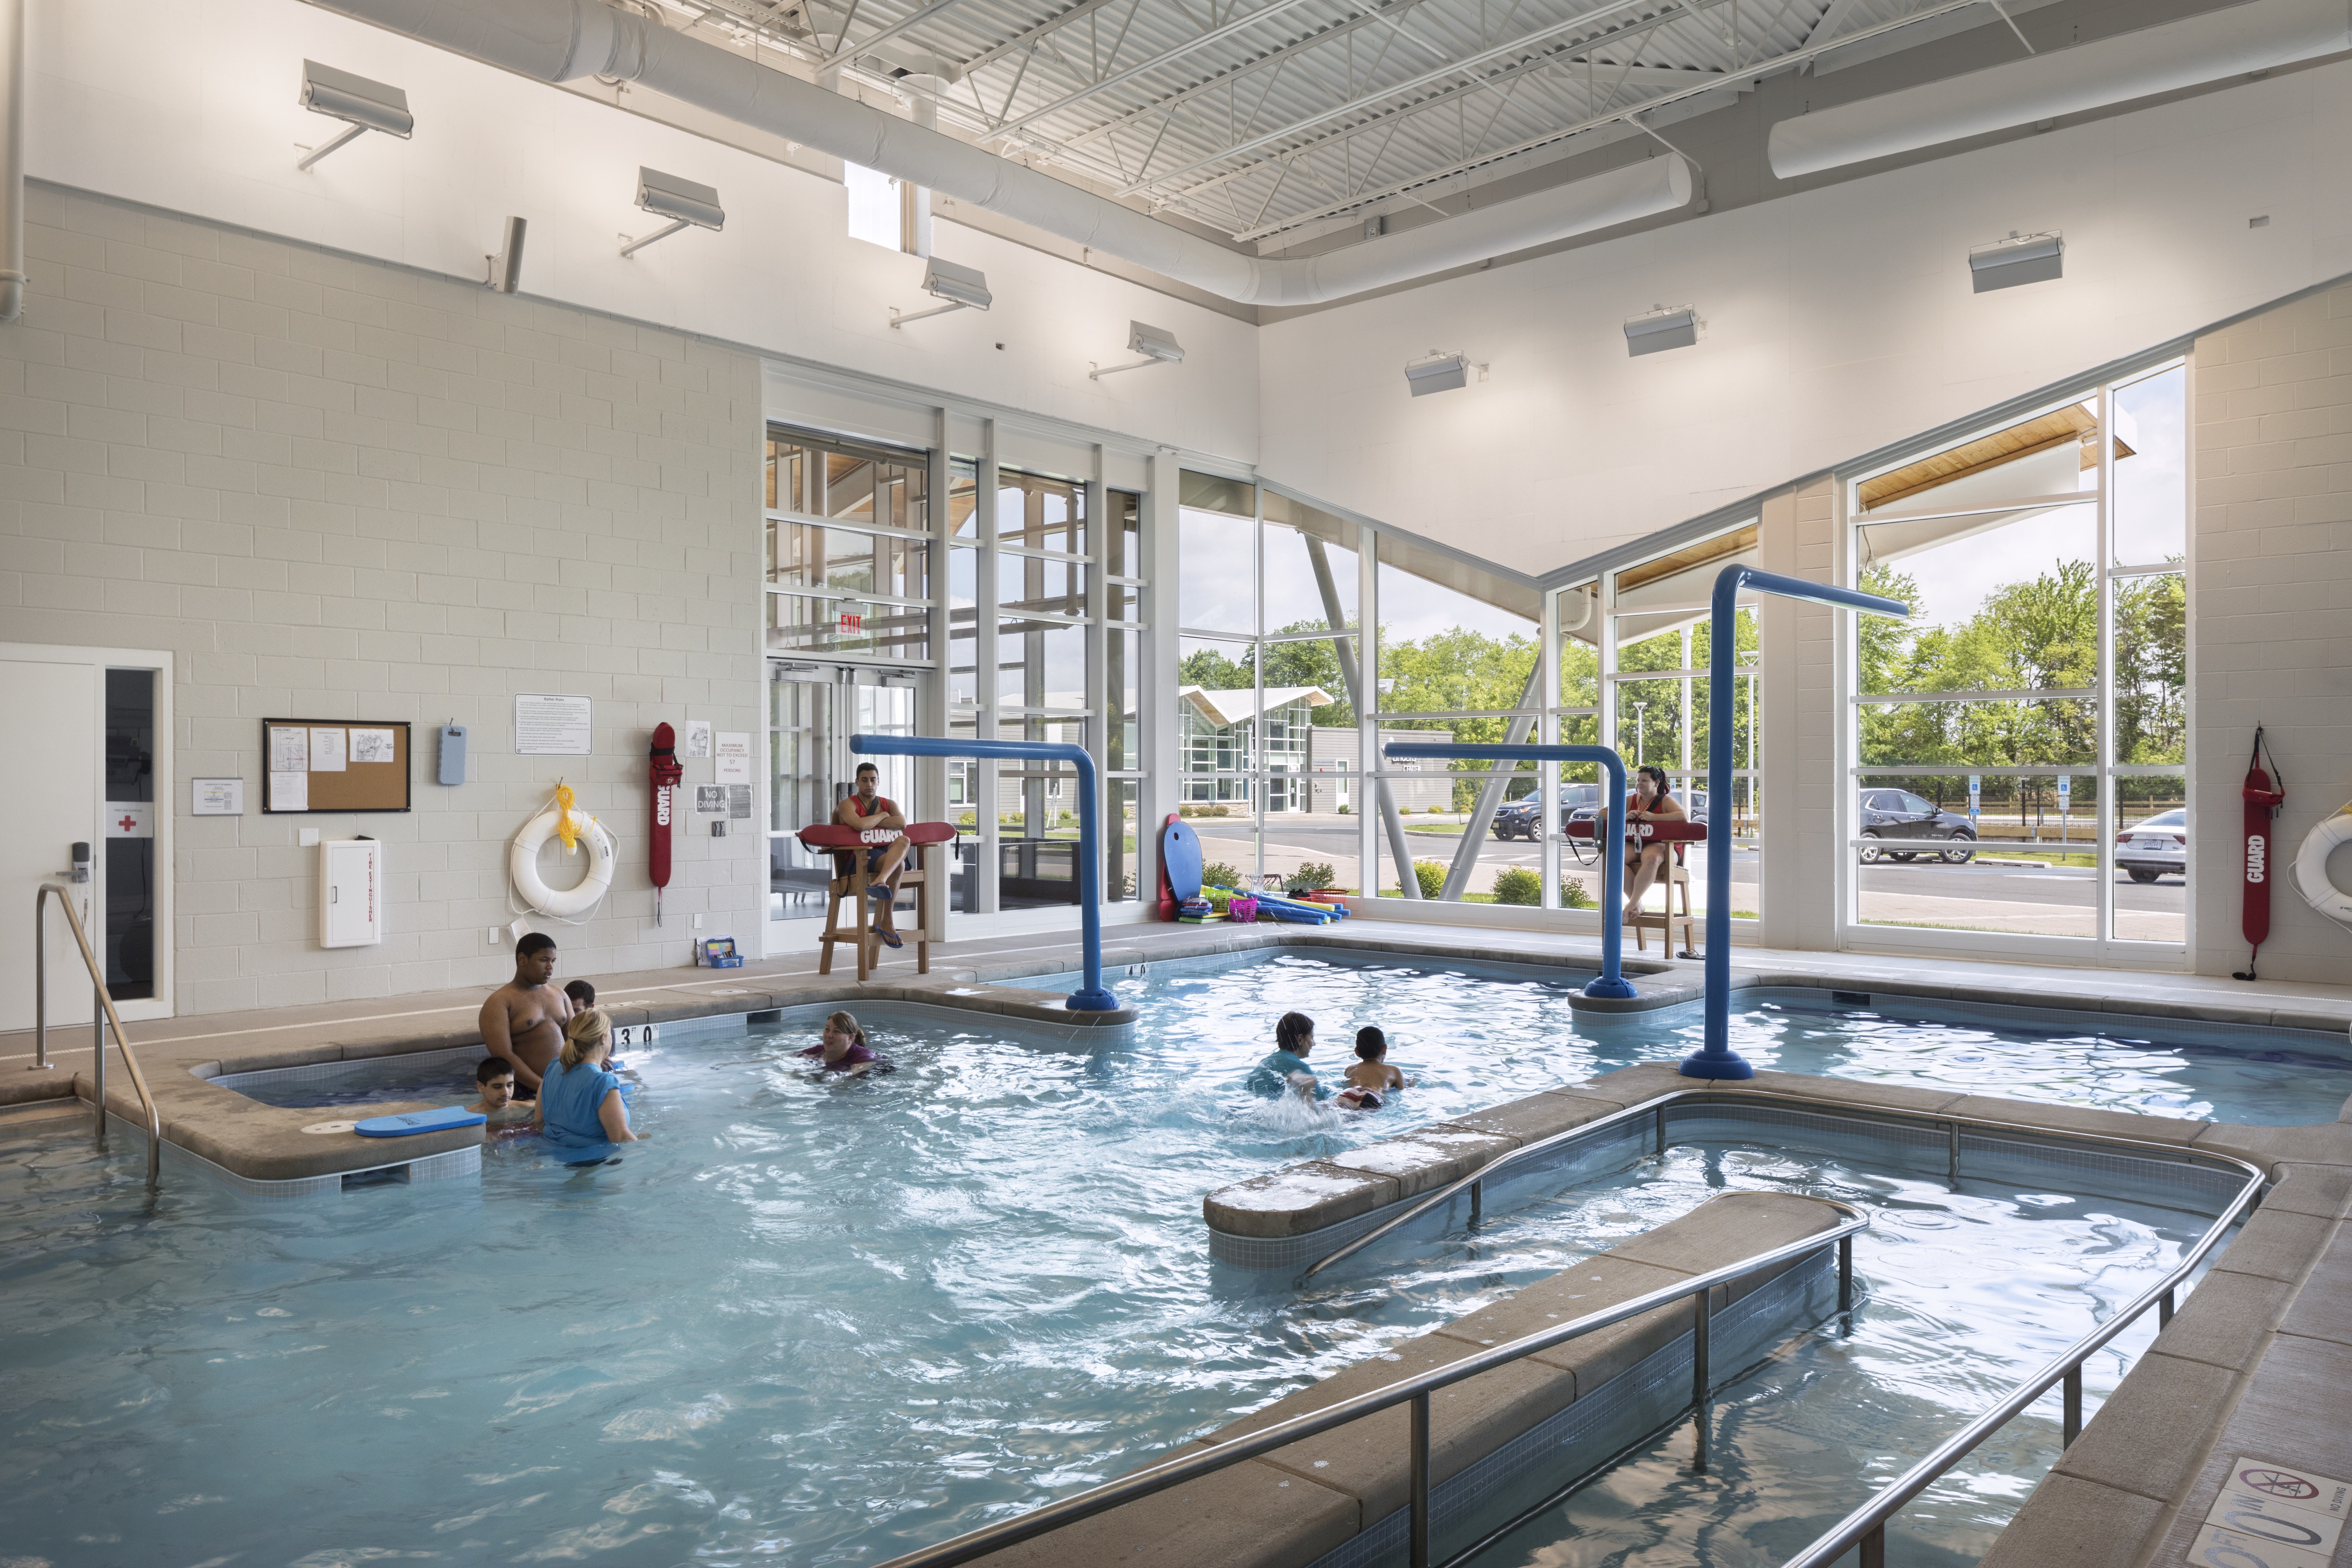 Water is popular design element on Bancroft's campus